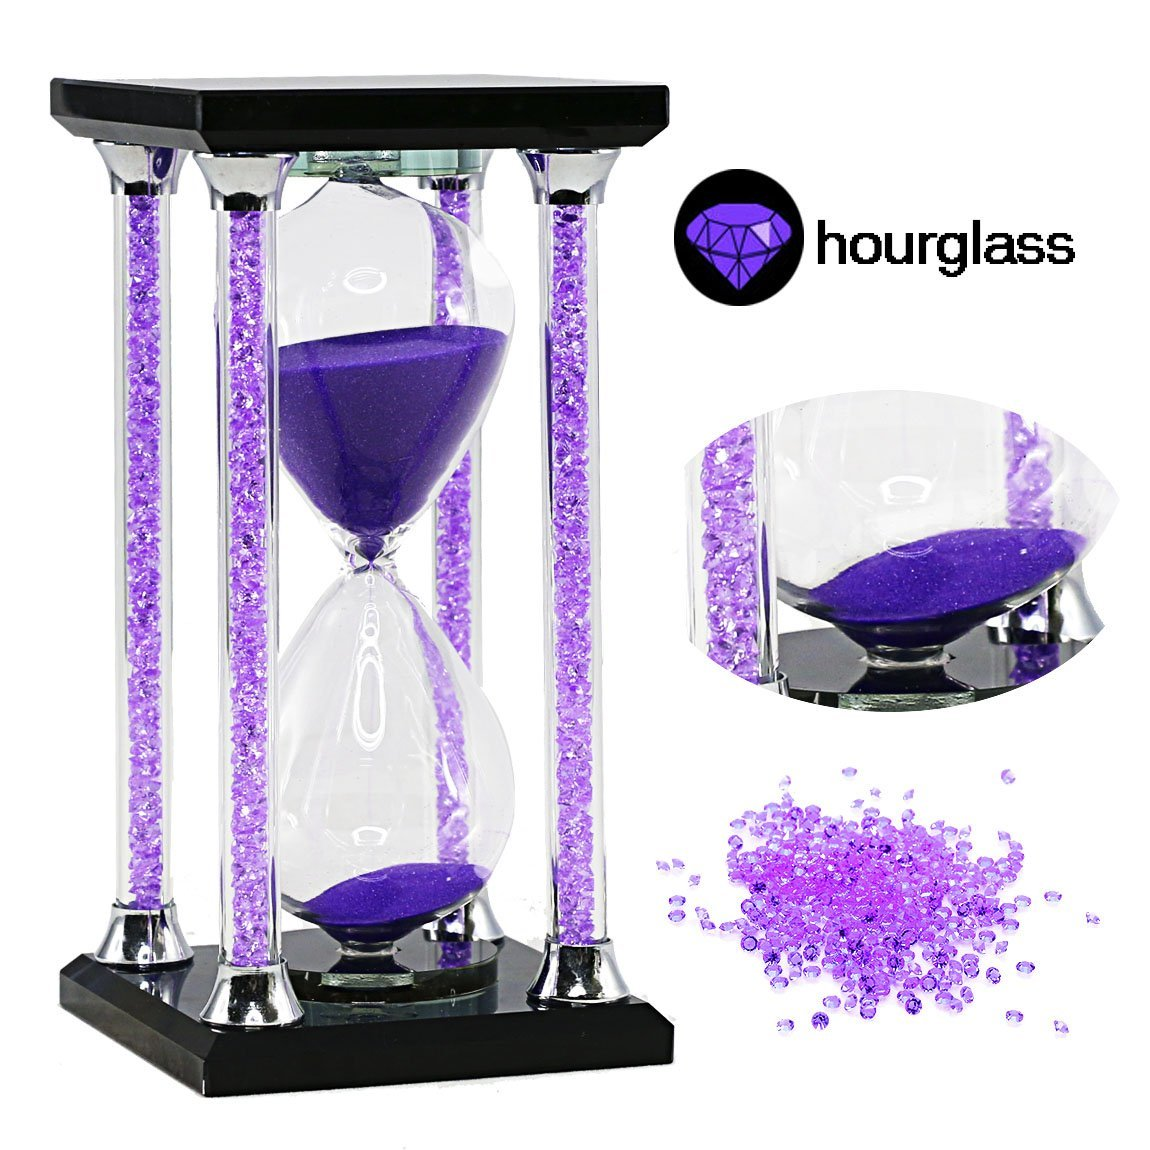 SZAT Hourglass Sand Timer Clock Romantic Mantel Office Desk Coffee Table Book Shelf Curio Cabinet Christmas Birthday Present Gift Box Package(Purple, Black Porch,30 Minutes)